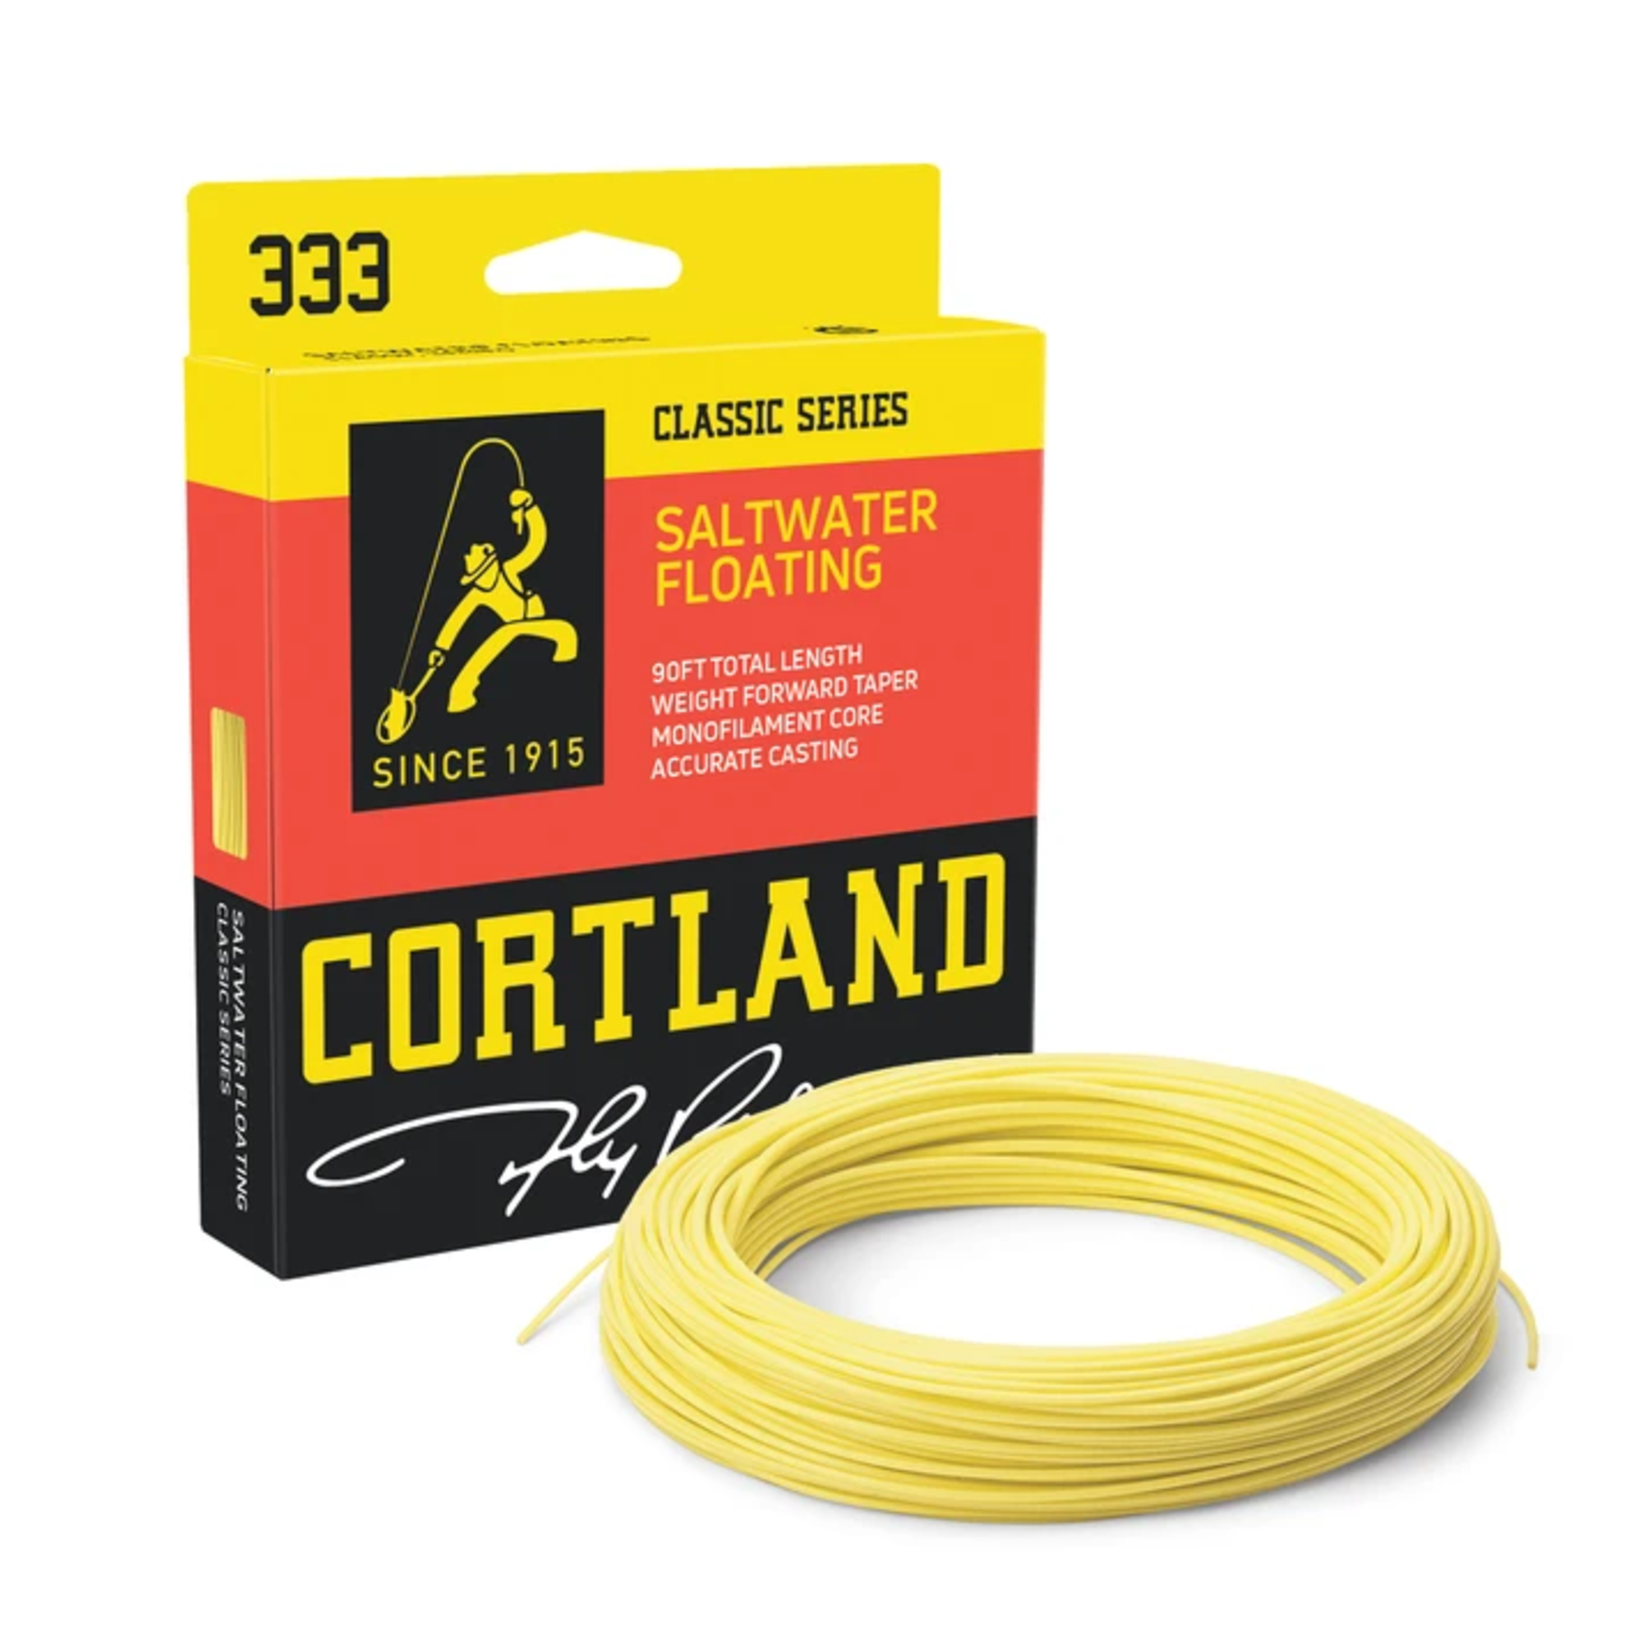 Cortland | 333 Classic Series Saltwater Floating 8wt